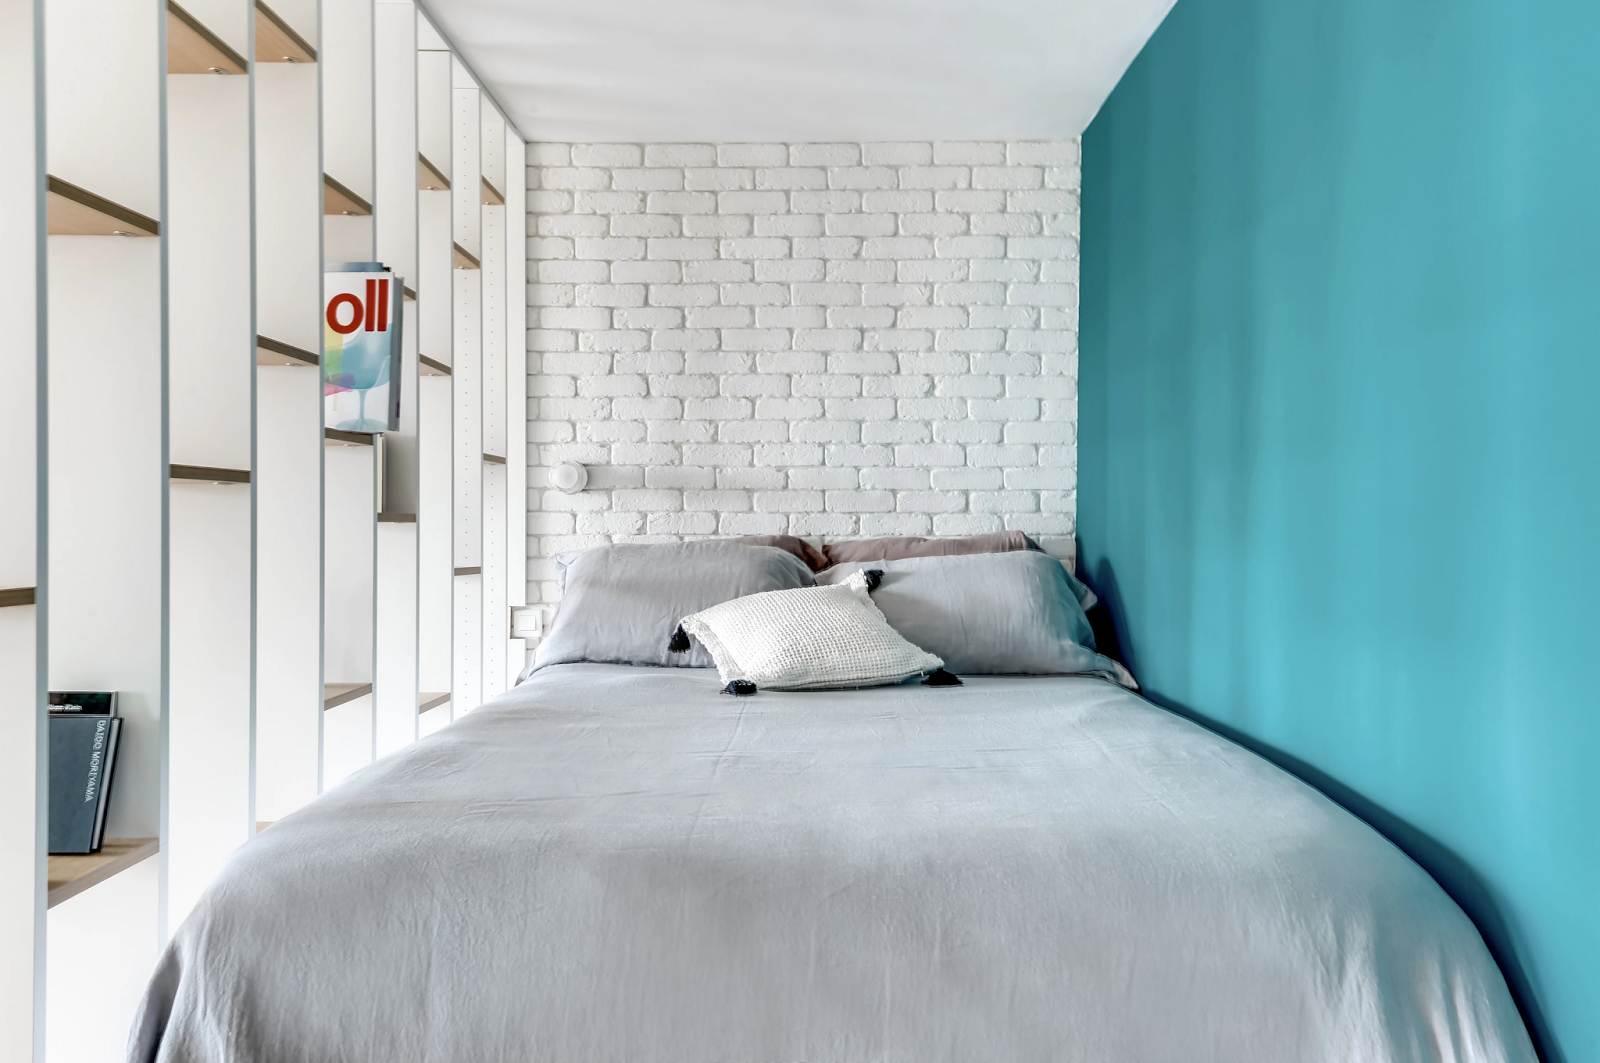 Bedroom in a small apartment, blue painted wall, naked bricks